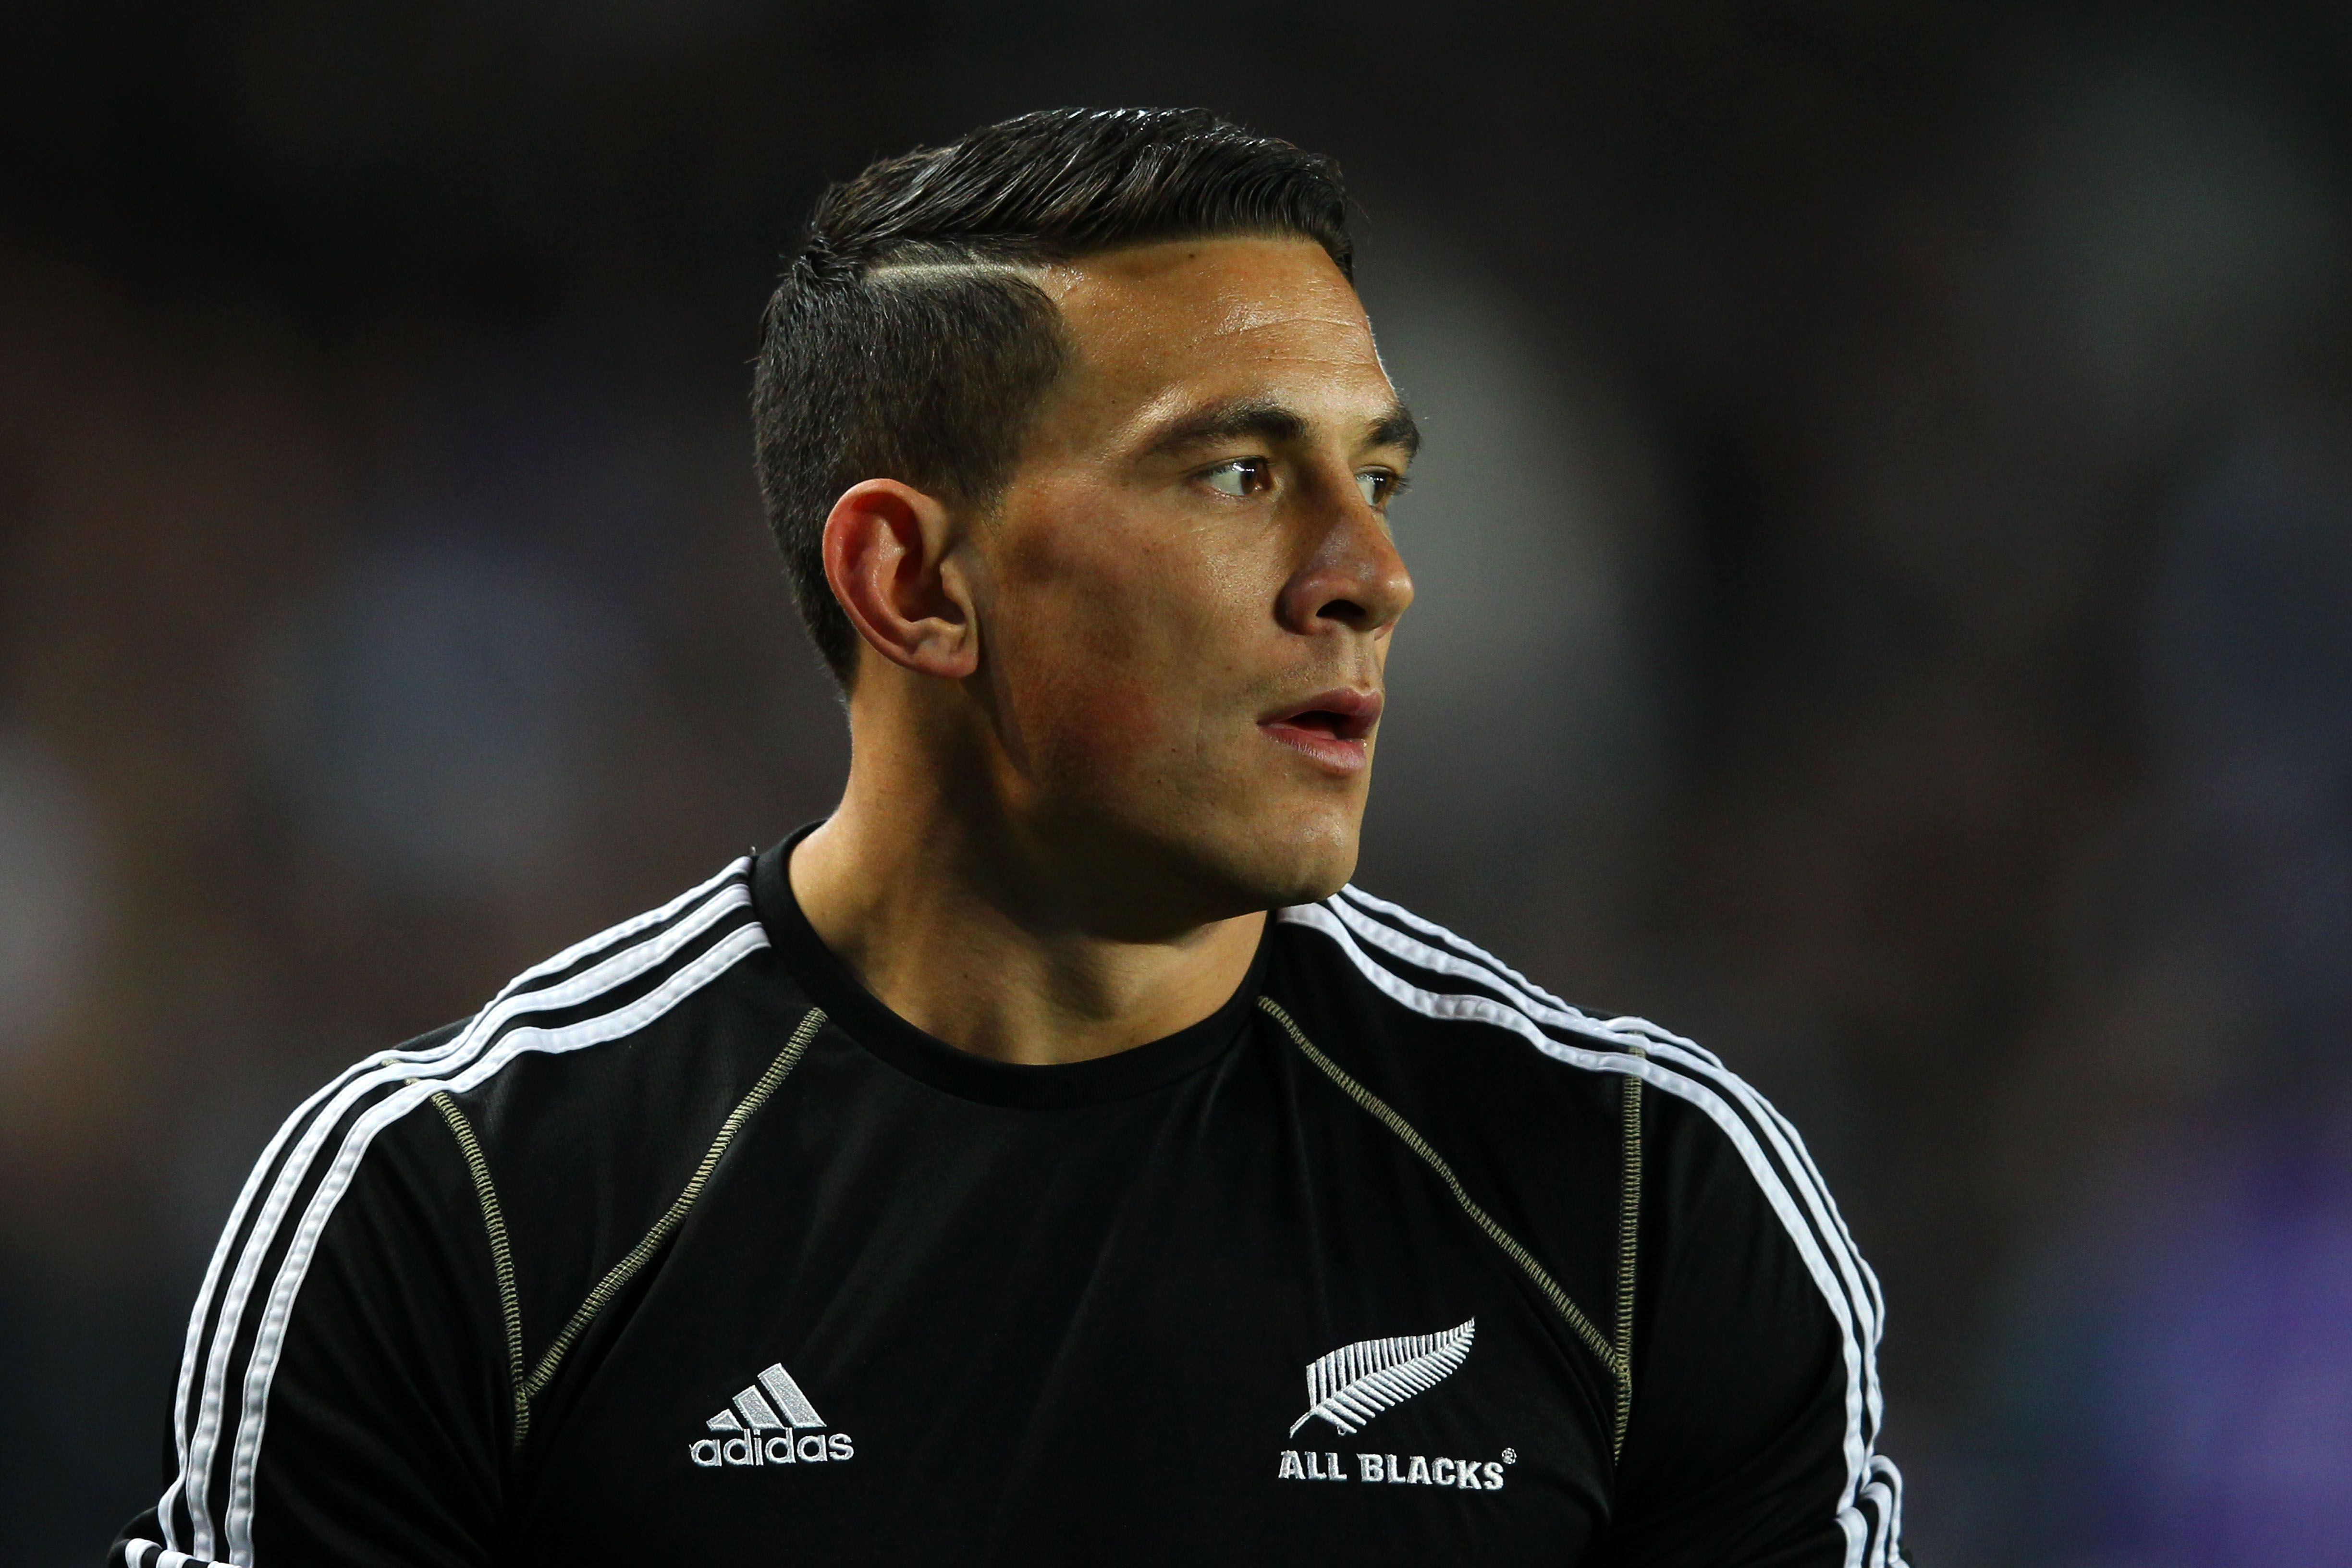 Sonny Bill Williams For The New Zealand All Blacks I Need To Stop